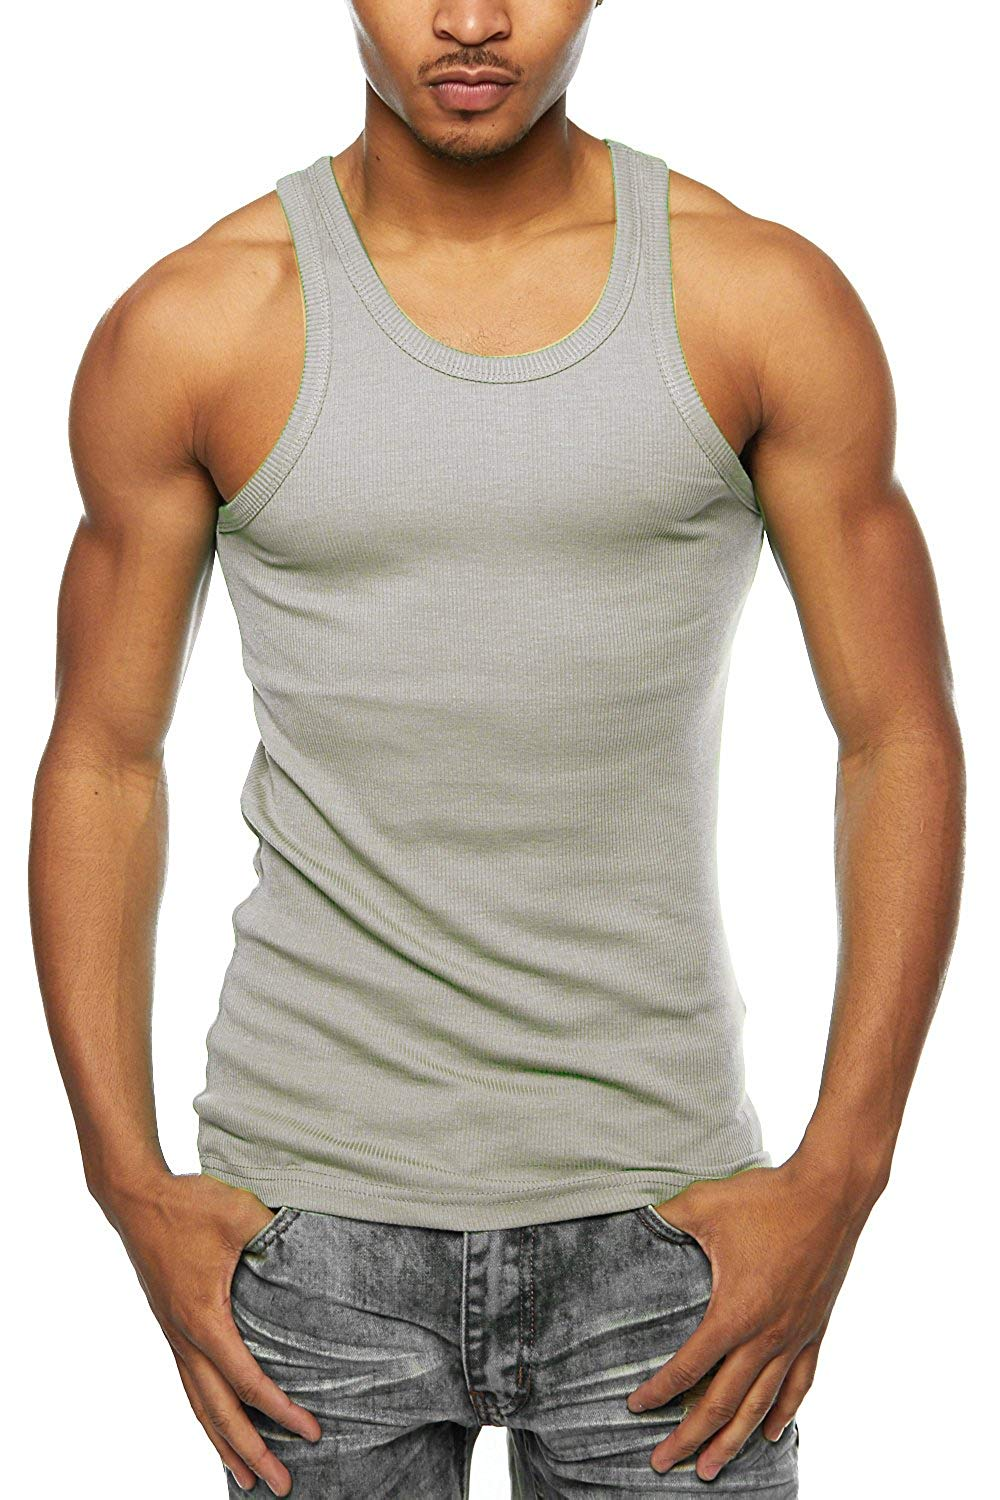 e62b9abbcf4a Get Quotations · Mens 3 Pcs Pack 100% Cotton Muscle A-Shirt Ribbed  Undershirt 388T